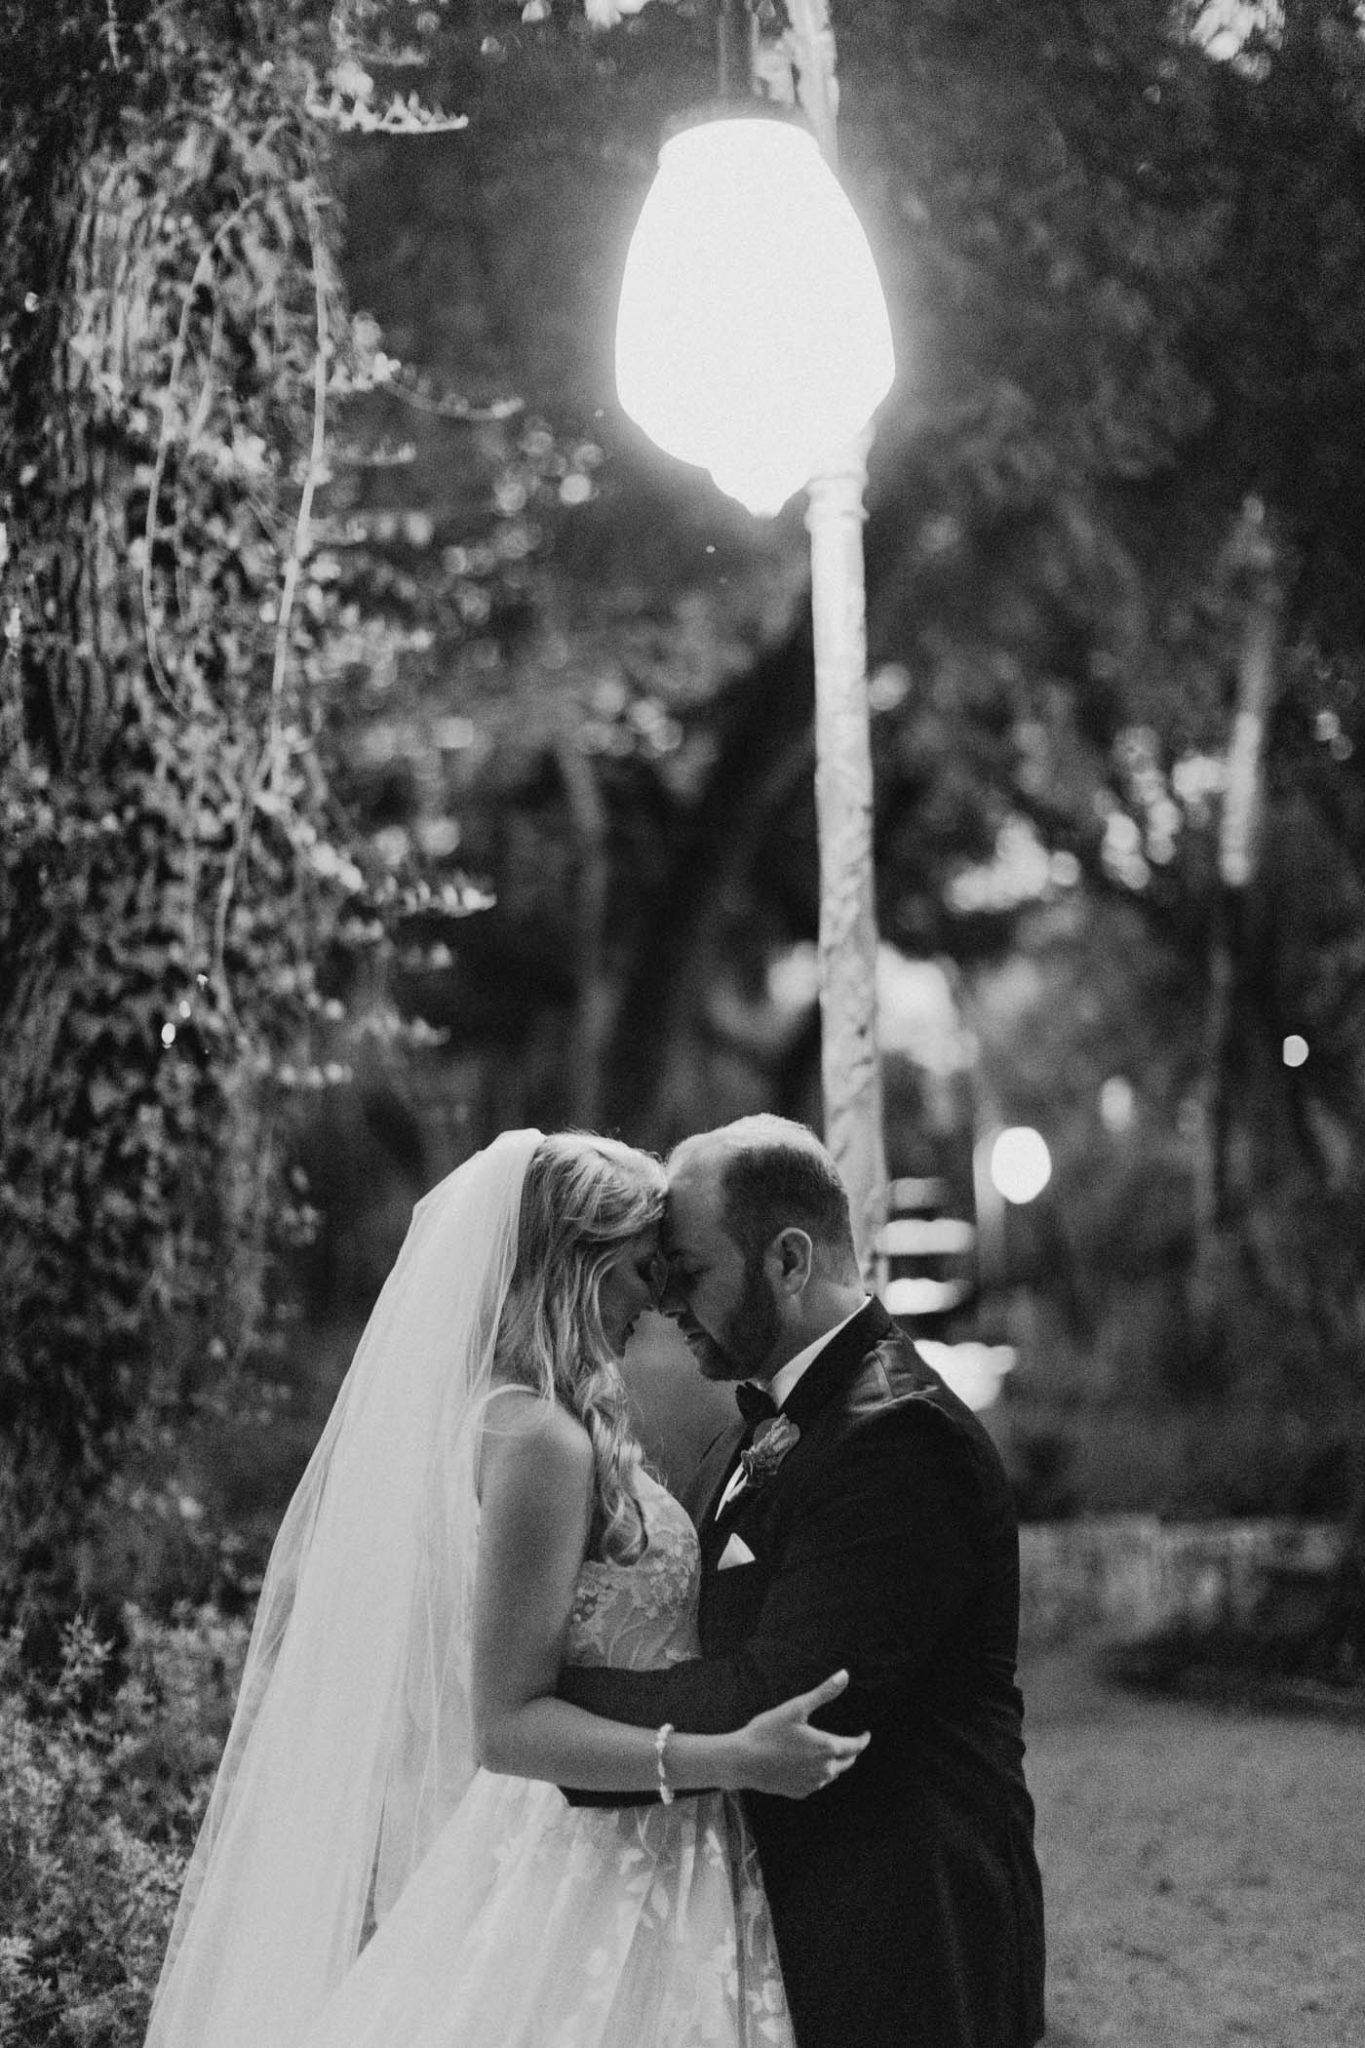 black and white photo of married couple standing under a street light after ceremony